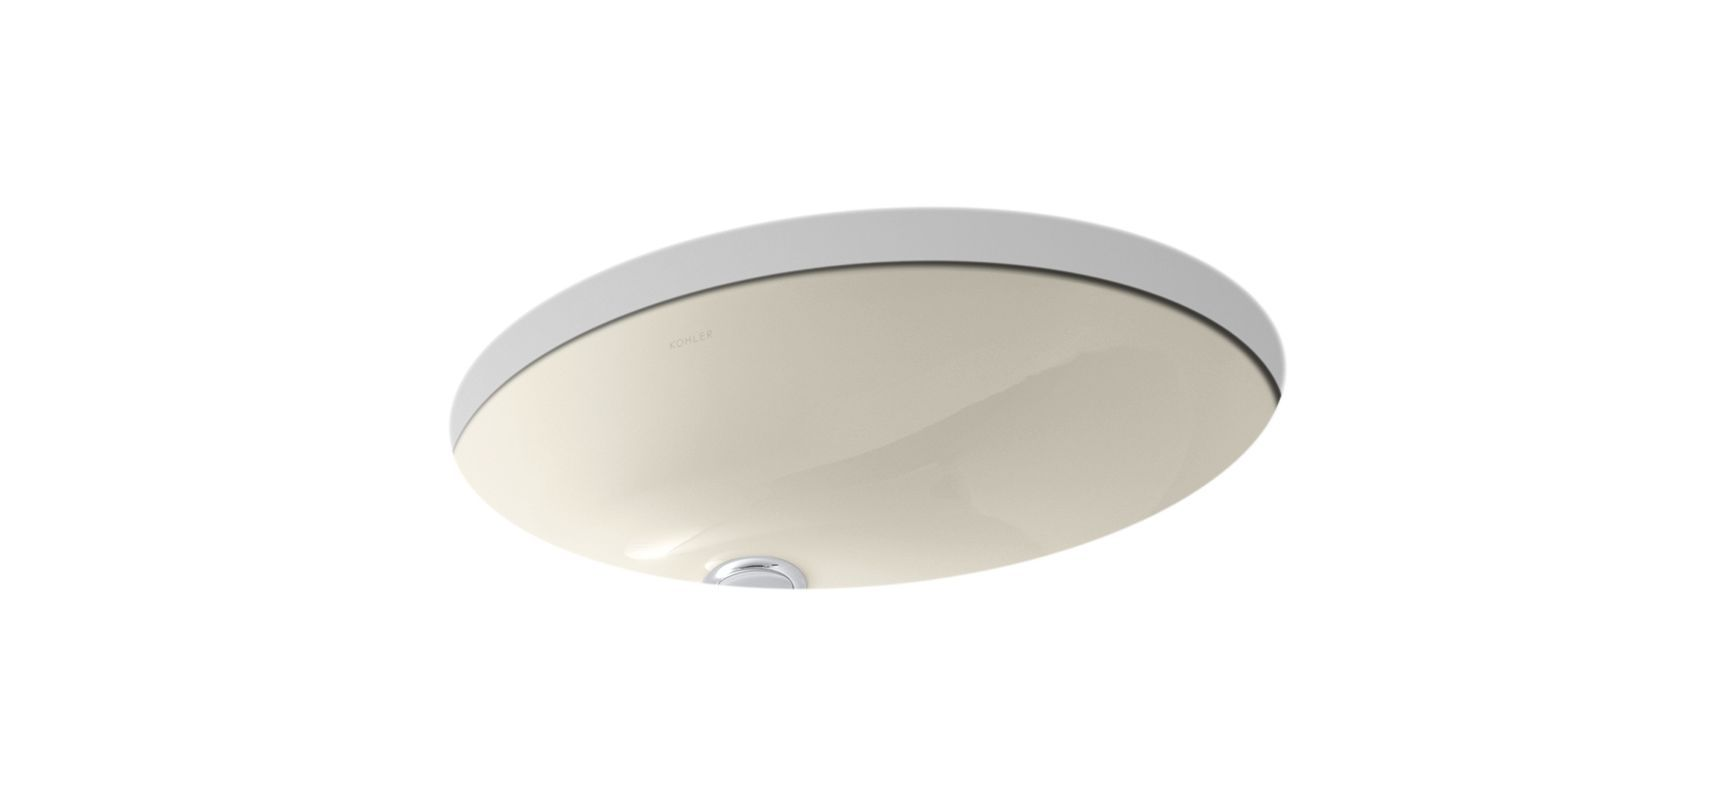 "Kohler K-2210 Caxton 17"" Undermount Bathroom Sink with Overflow Almond Fixture Lavatory Sink Vitreous China"